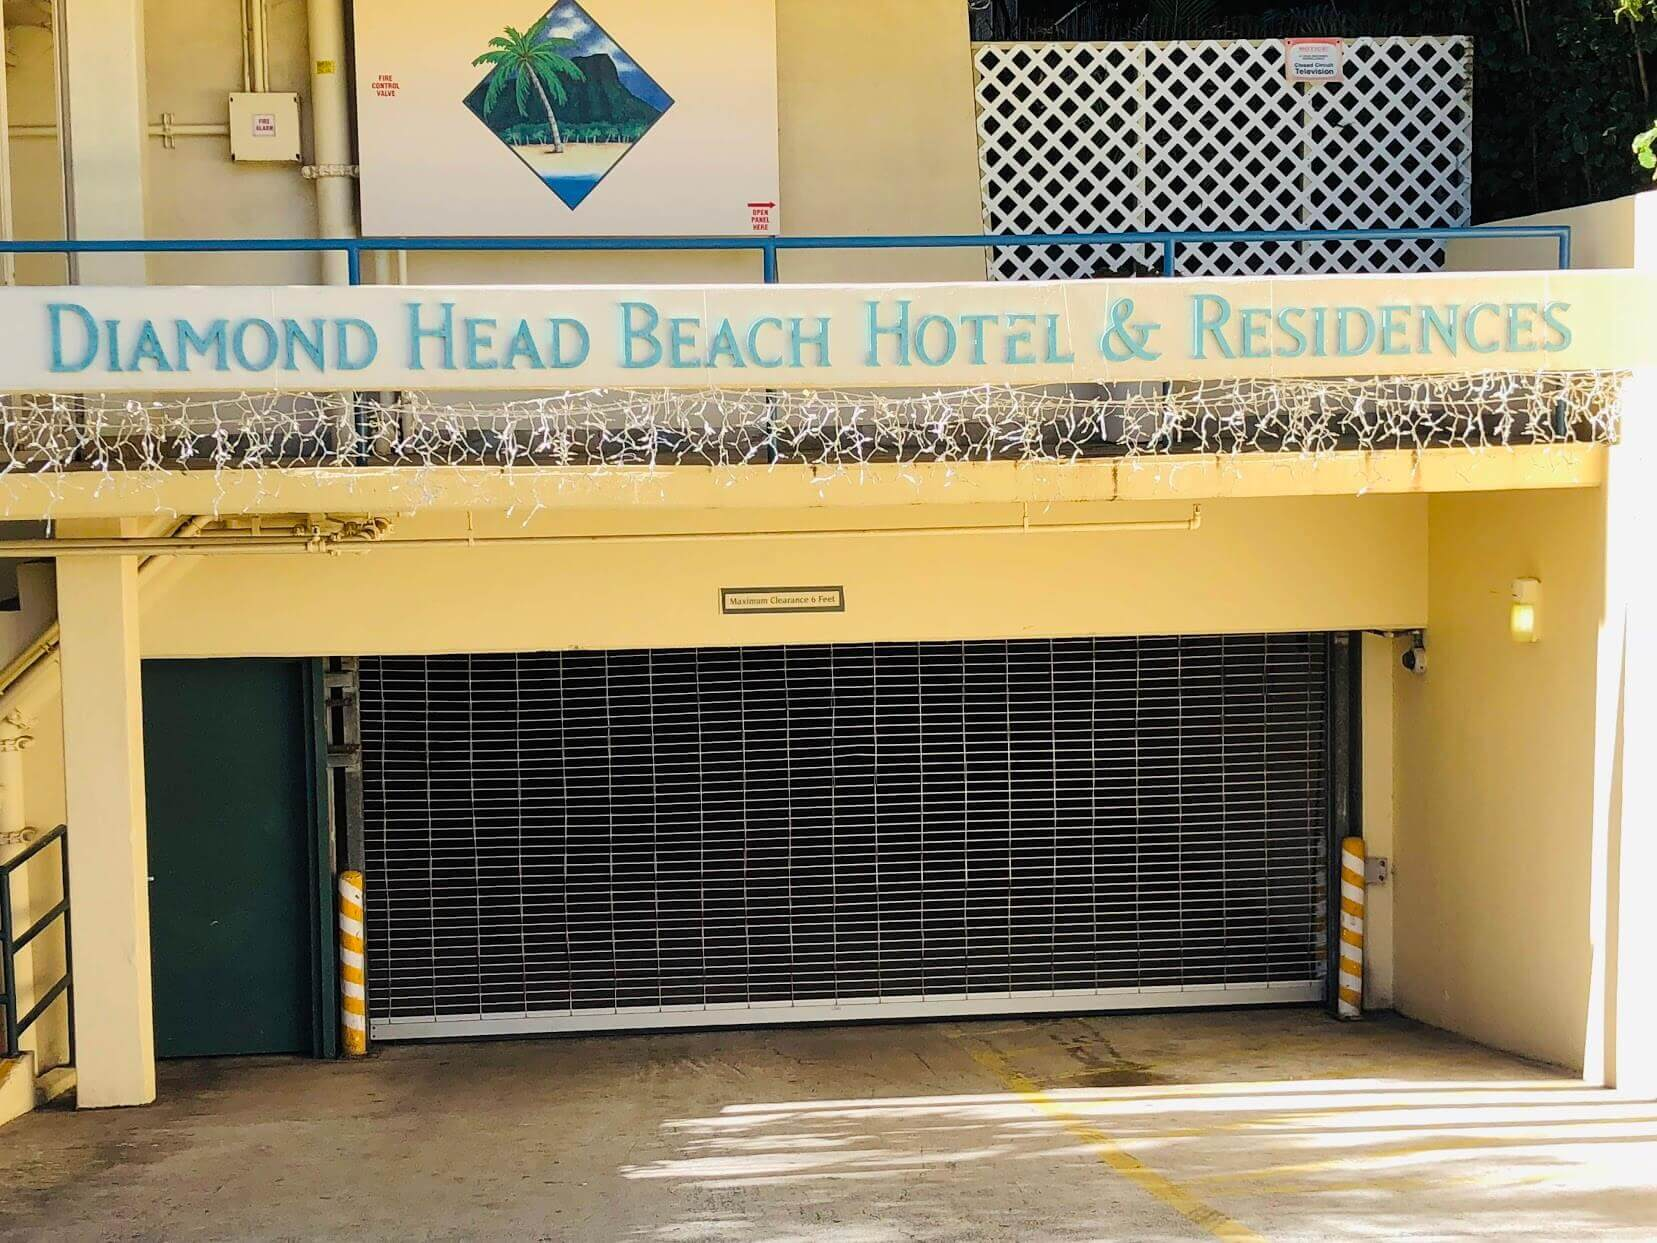 Diamond Head Beach Hotelの看板